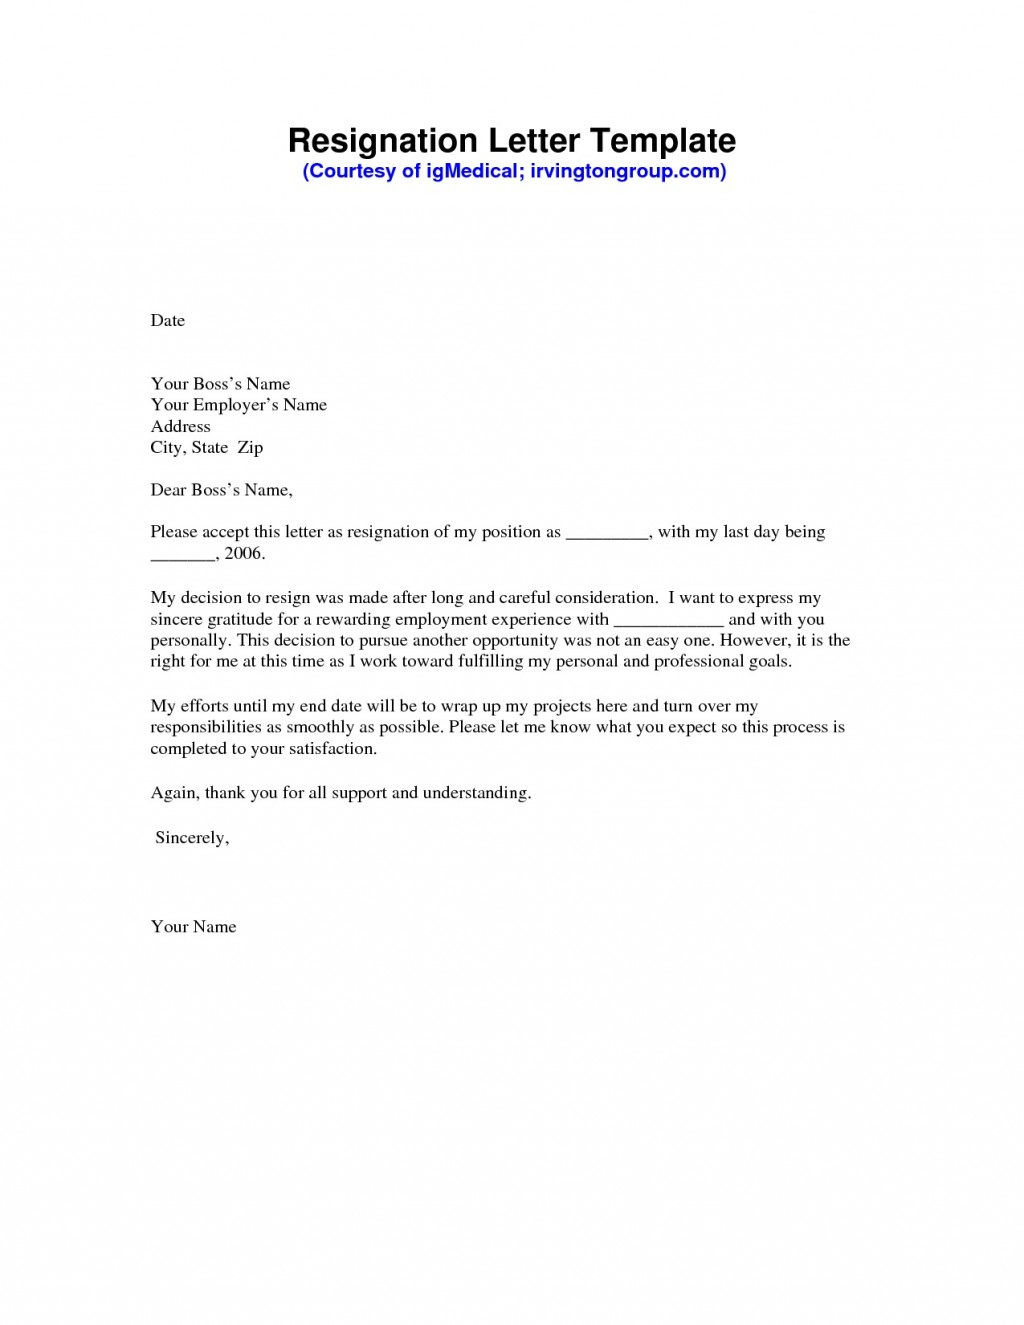 000 Remarkable Professional Resignation Letter Template Image  Best Format Pdf How To Write ALarge